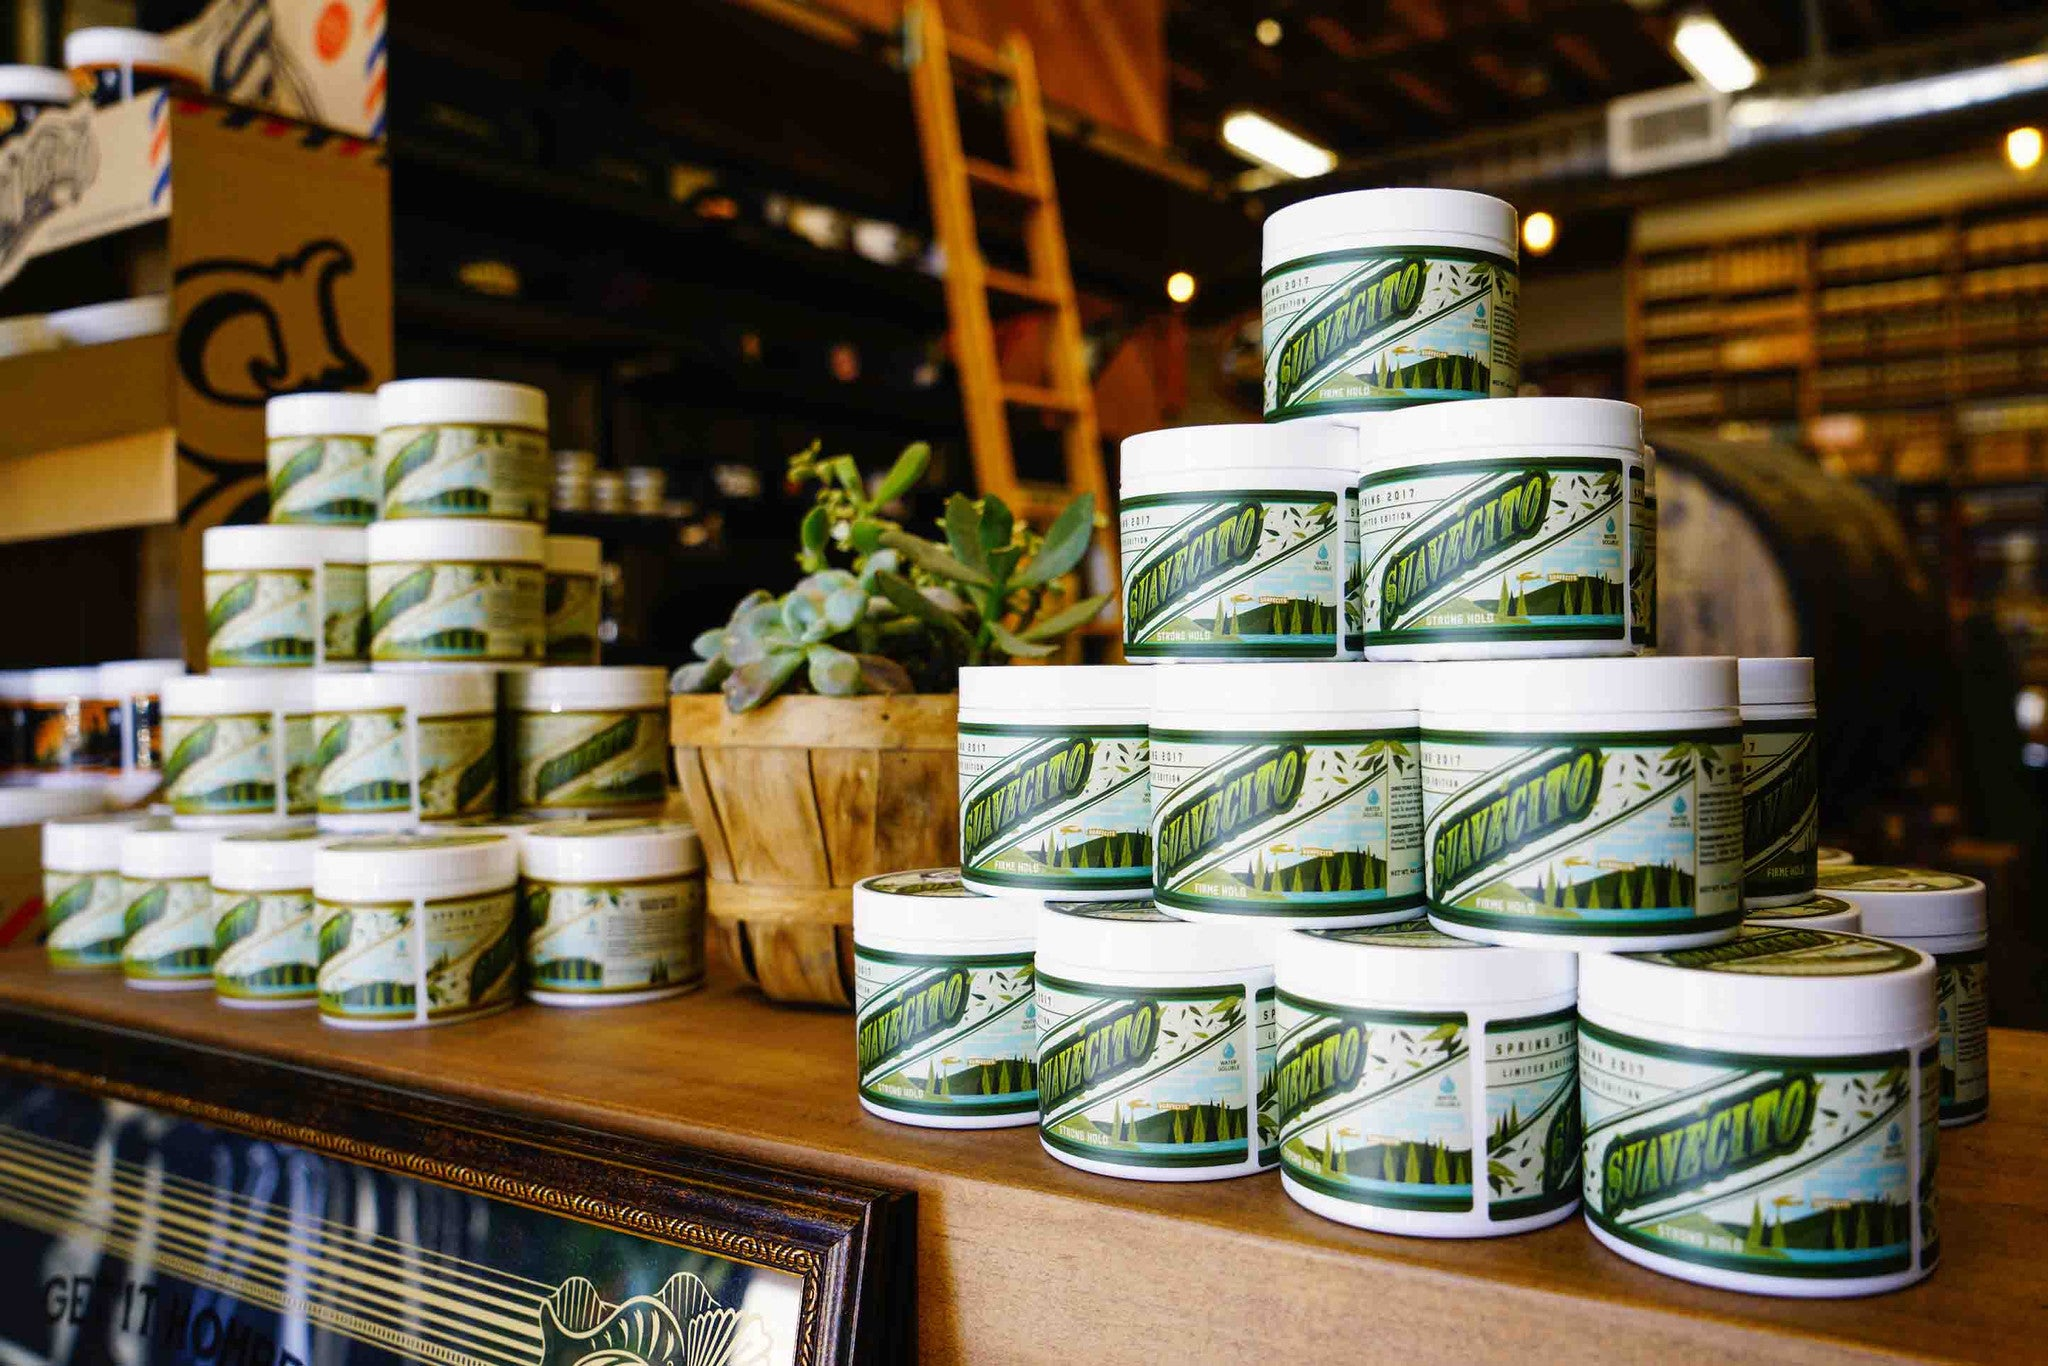 Inside the suavecito pomade headquarters in santa ana california